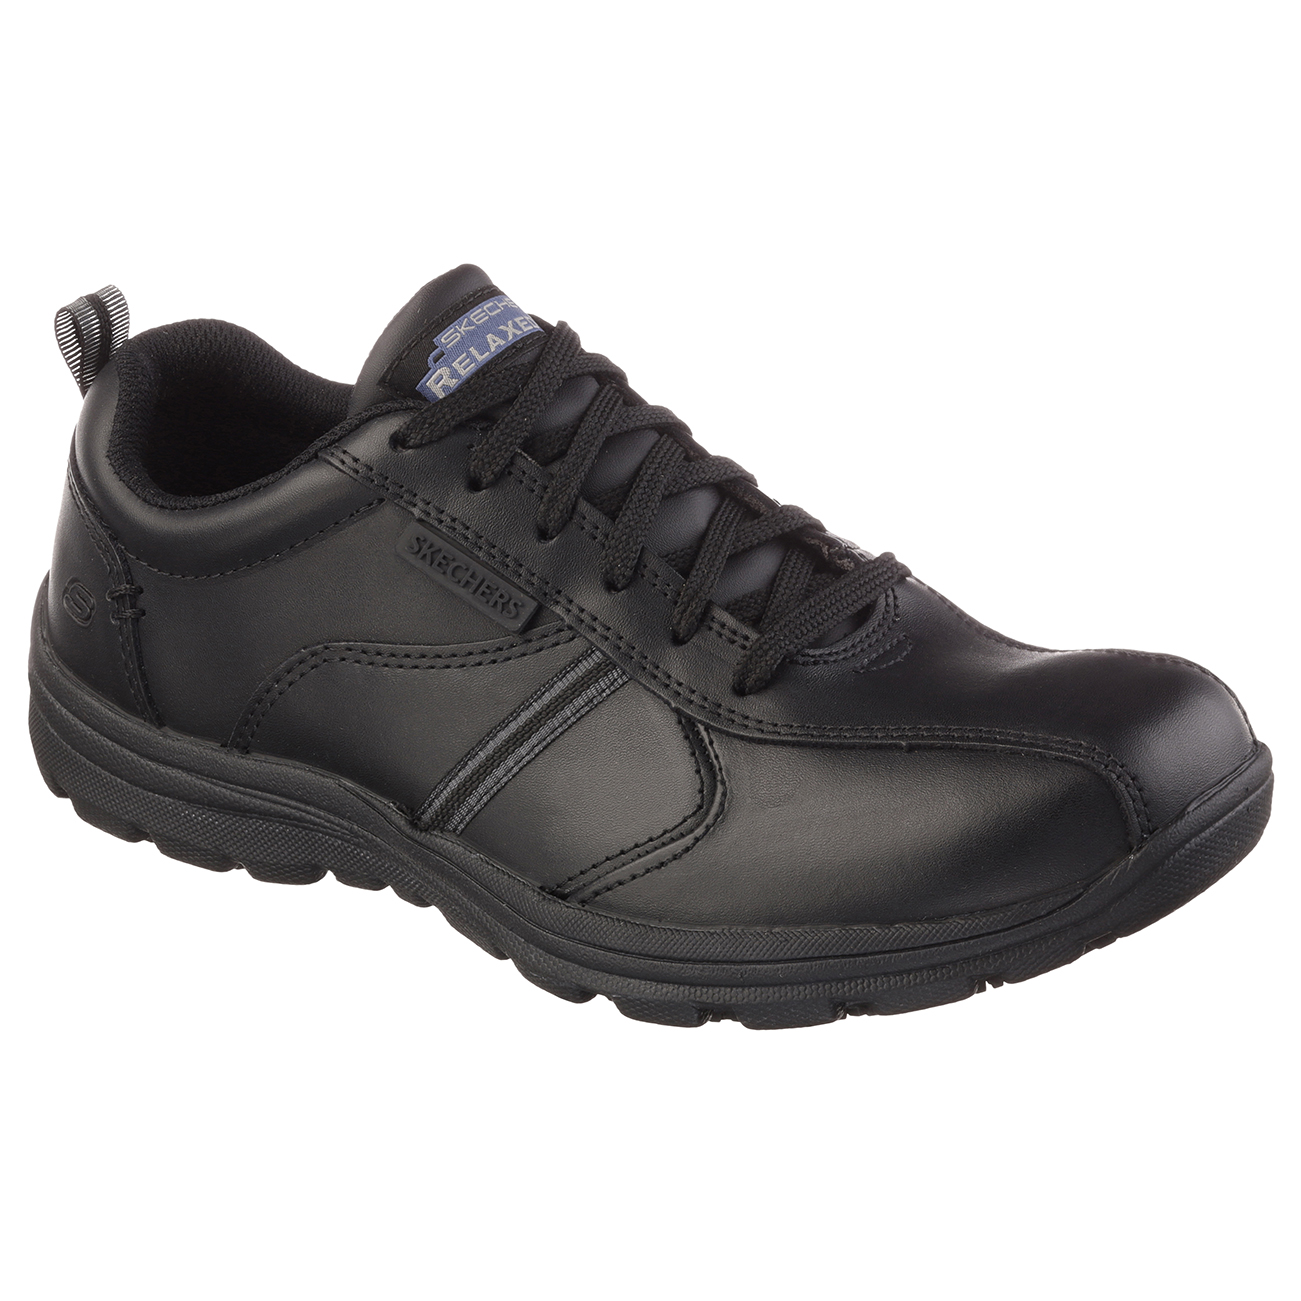 Skechers Hobbes Frat SR Relaxed Fit